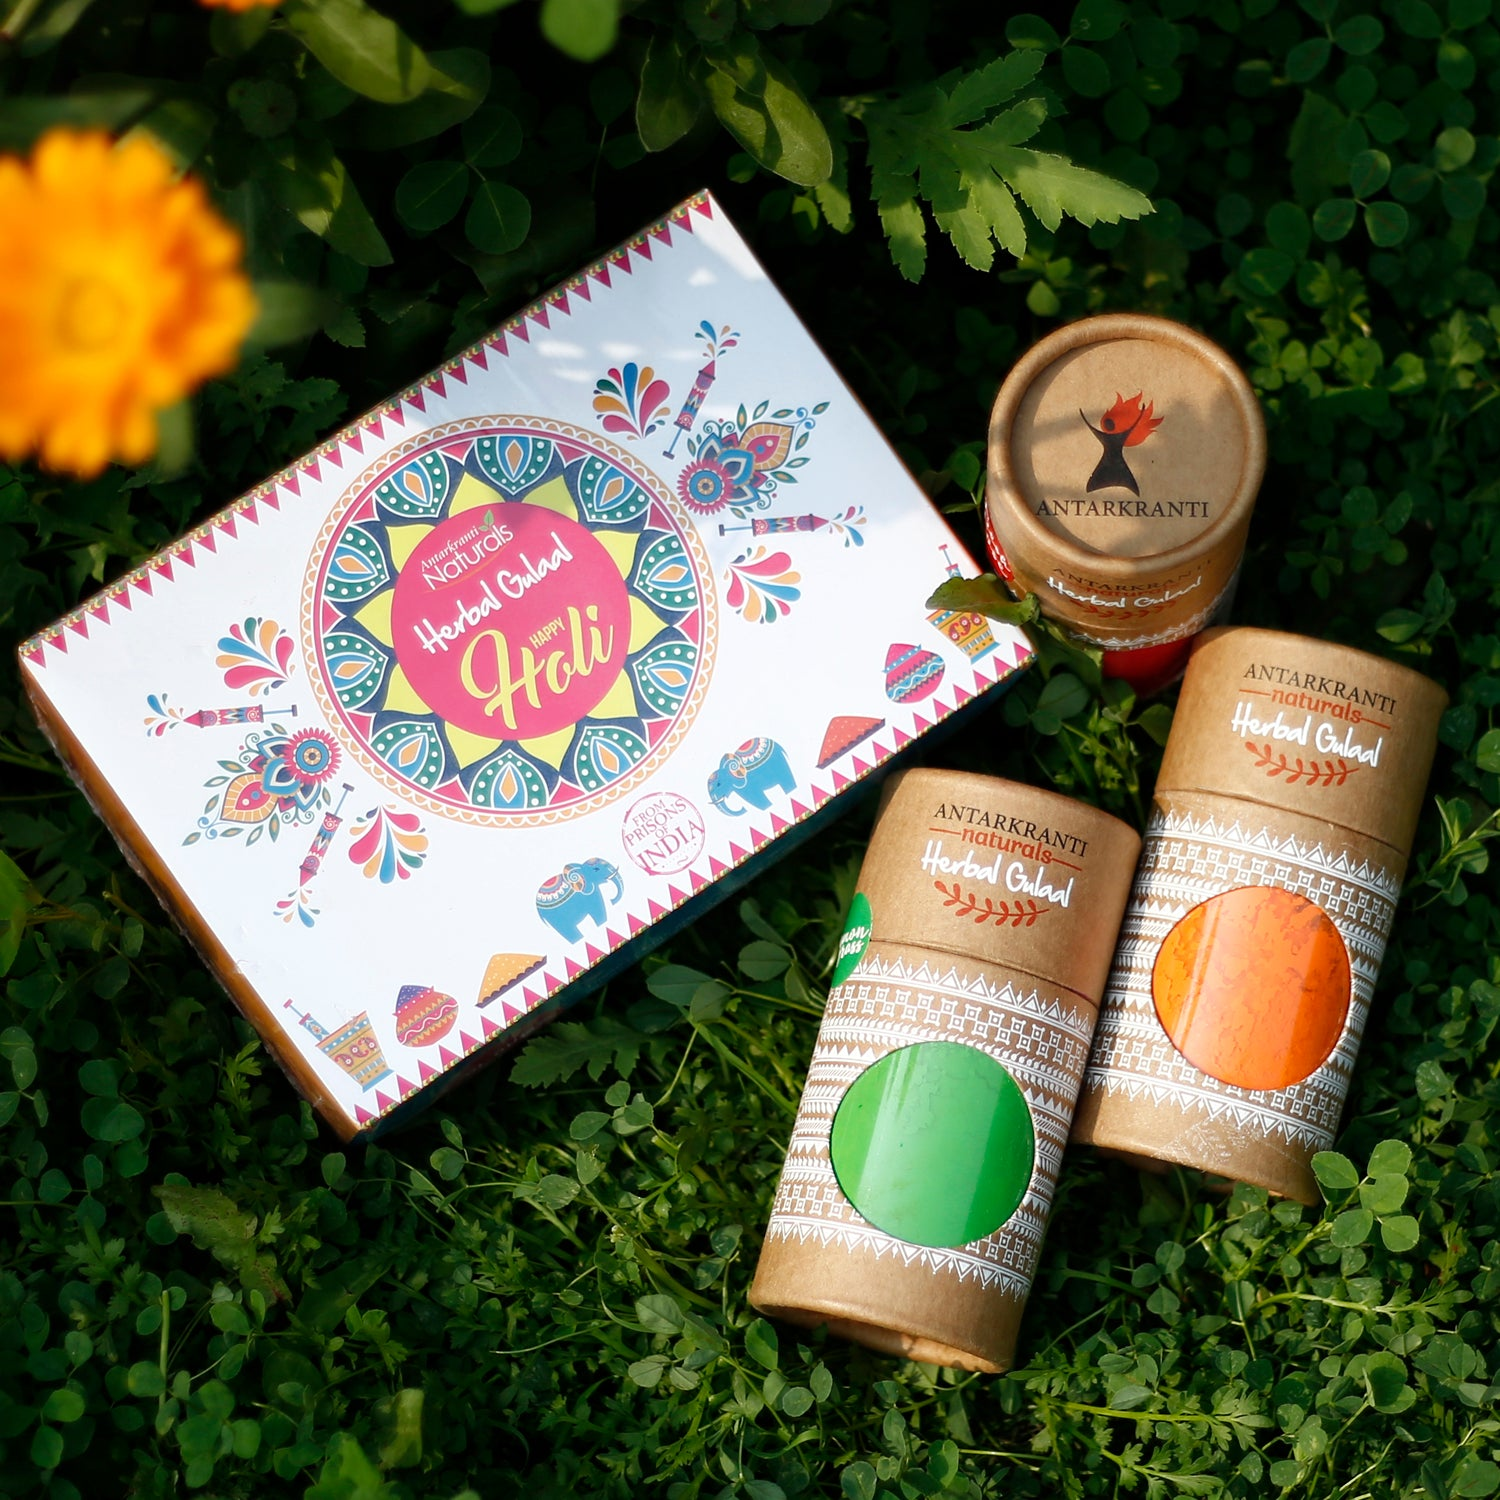 Classic 3 in 1 Gift Set Herbal Holi Gulal. Herbal Holi Color 3 in 1 Gift Set